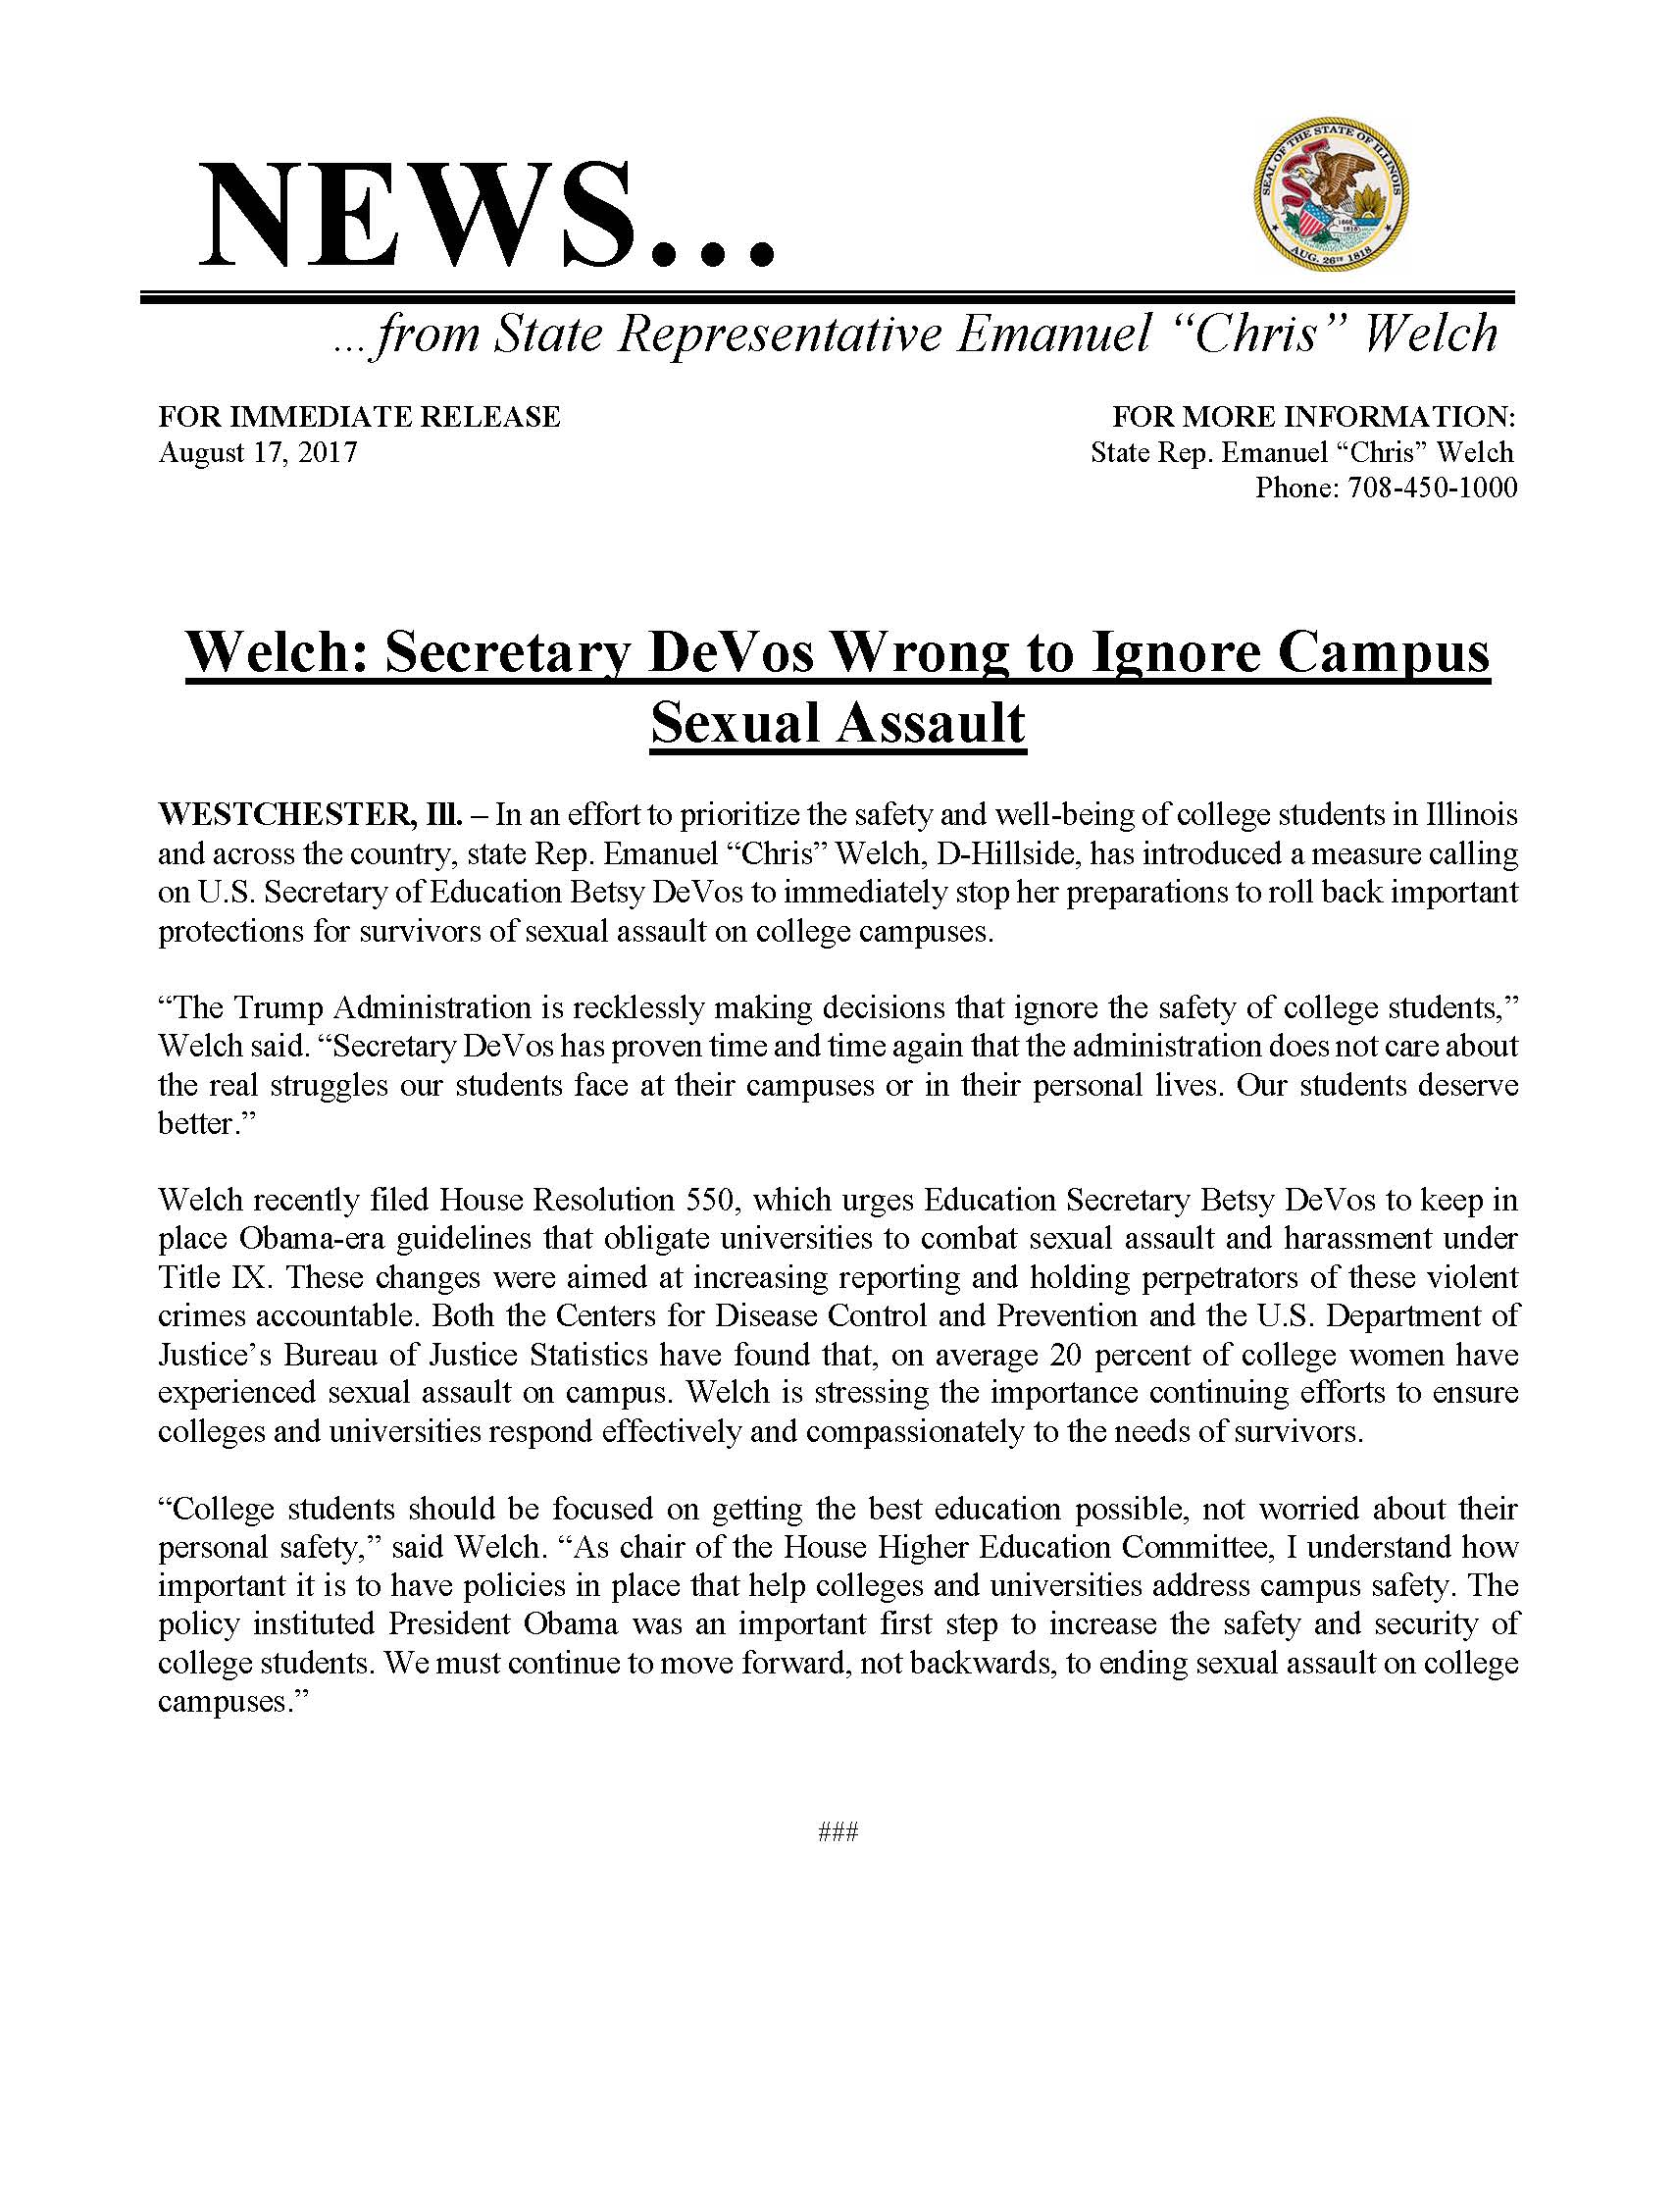 Welch: Secretary DeVos Wrong to Ignore Campus Sexual Assault  (August 17, 2017)